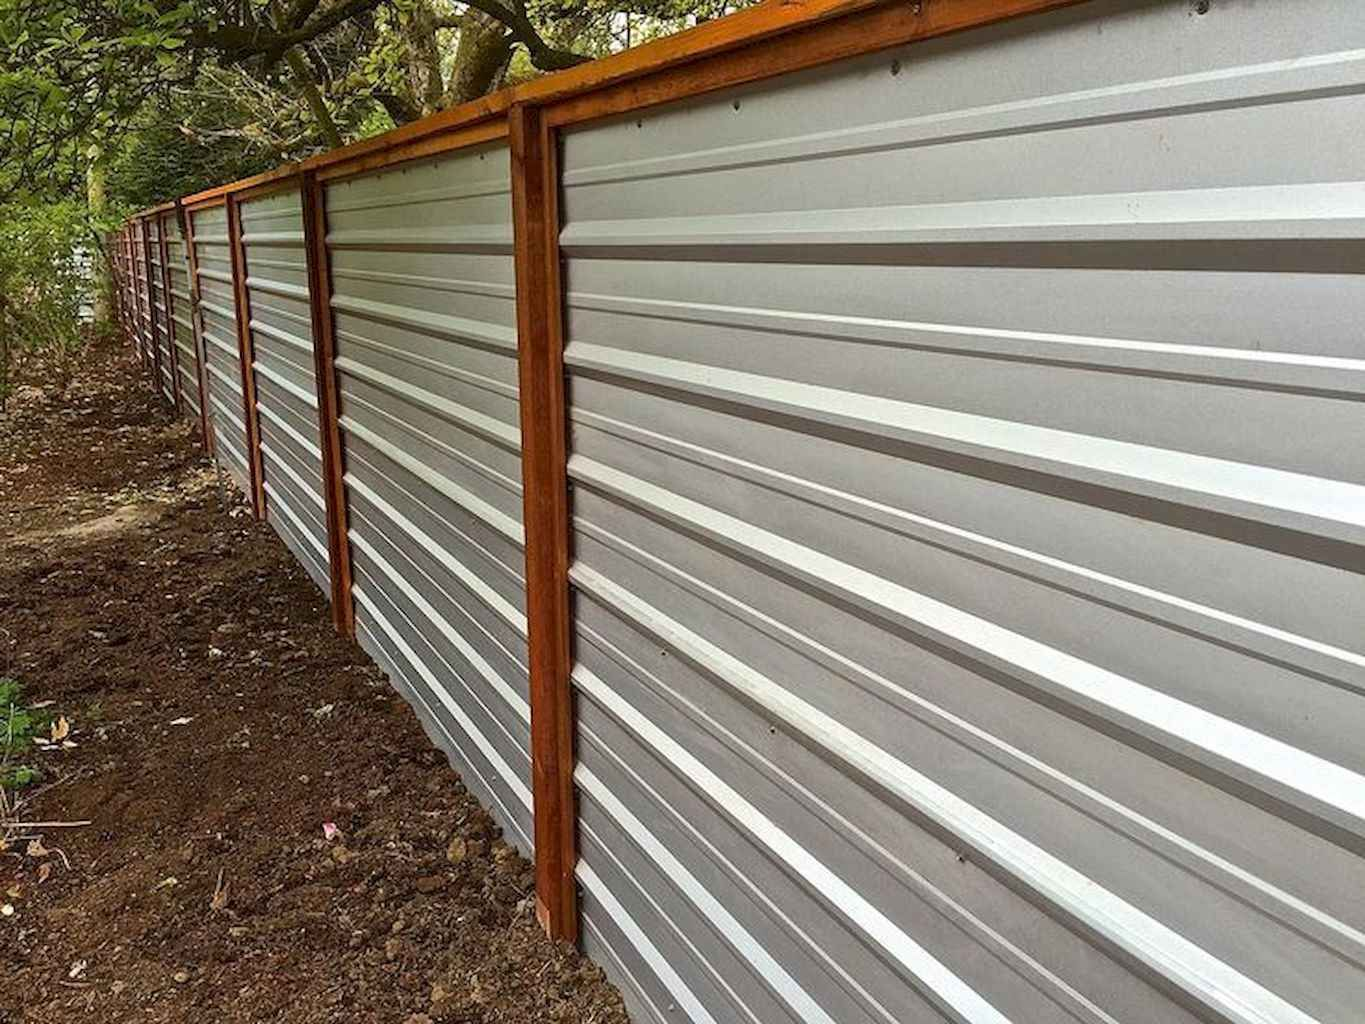 34 easy diy privacy fence ideas in 2020 diy privacy on inexpensive way to build a wood privacy fence diy guide for 2020 id=73164